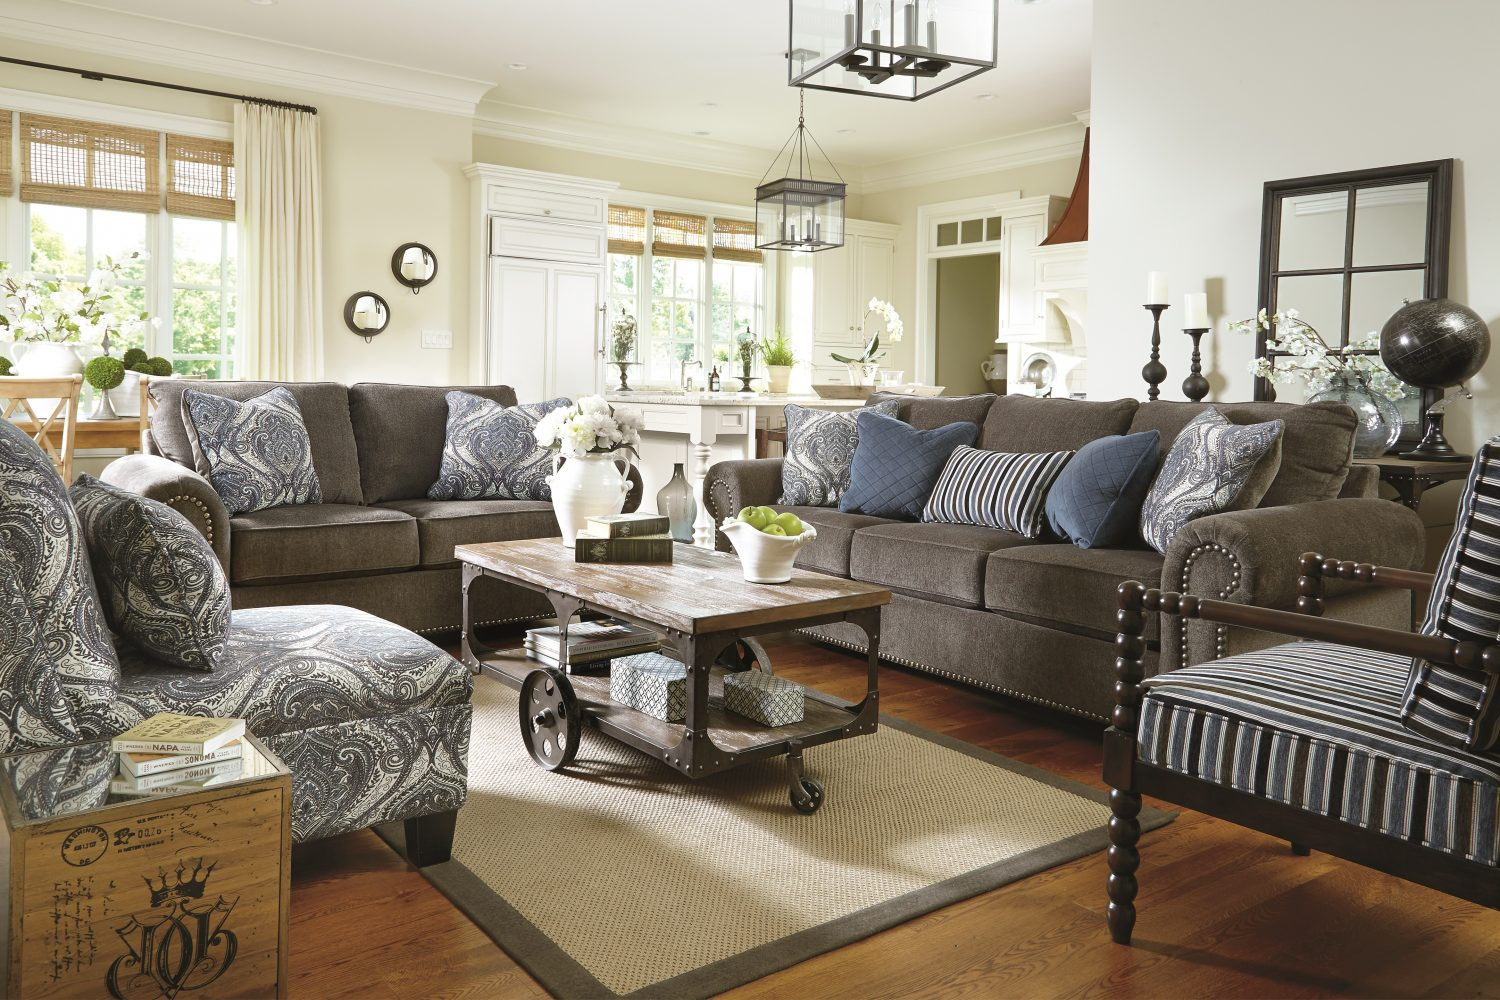 Living Room Furniture Layout Guide & Plan Ideas